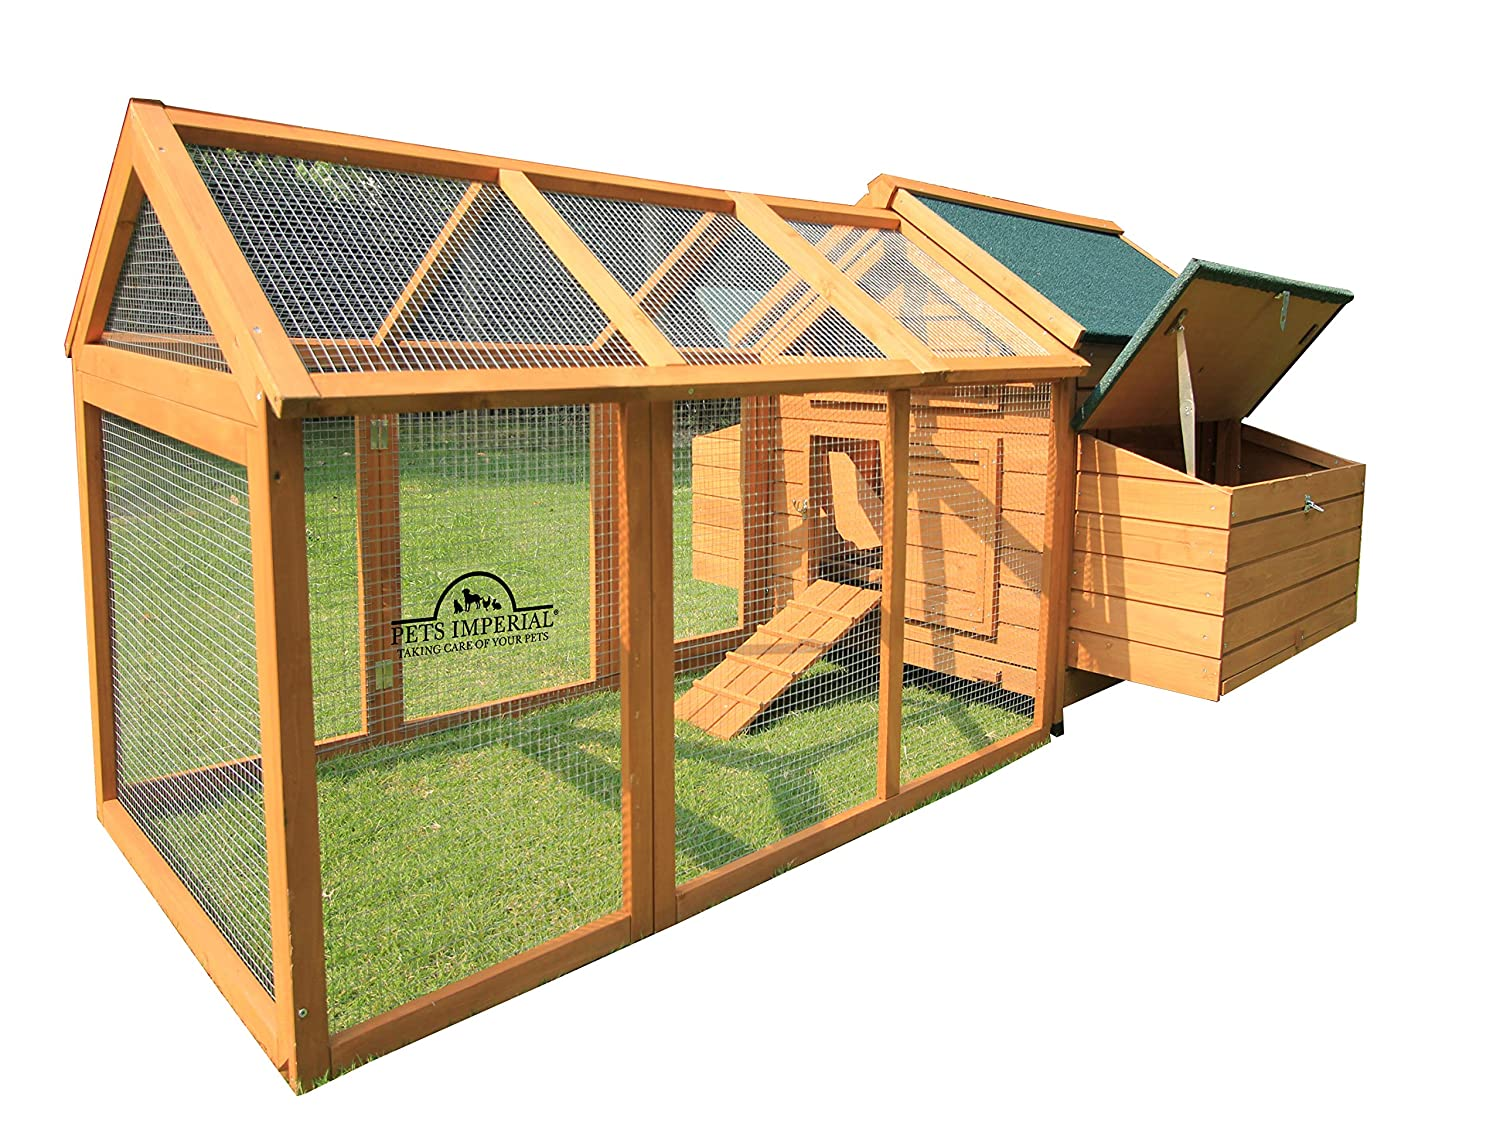 Pets Imperial® Marlborough Large Chicken Coop With Run Suitable For up 8  Birds With Double Nest Box - Easy Clean Leaning Tray